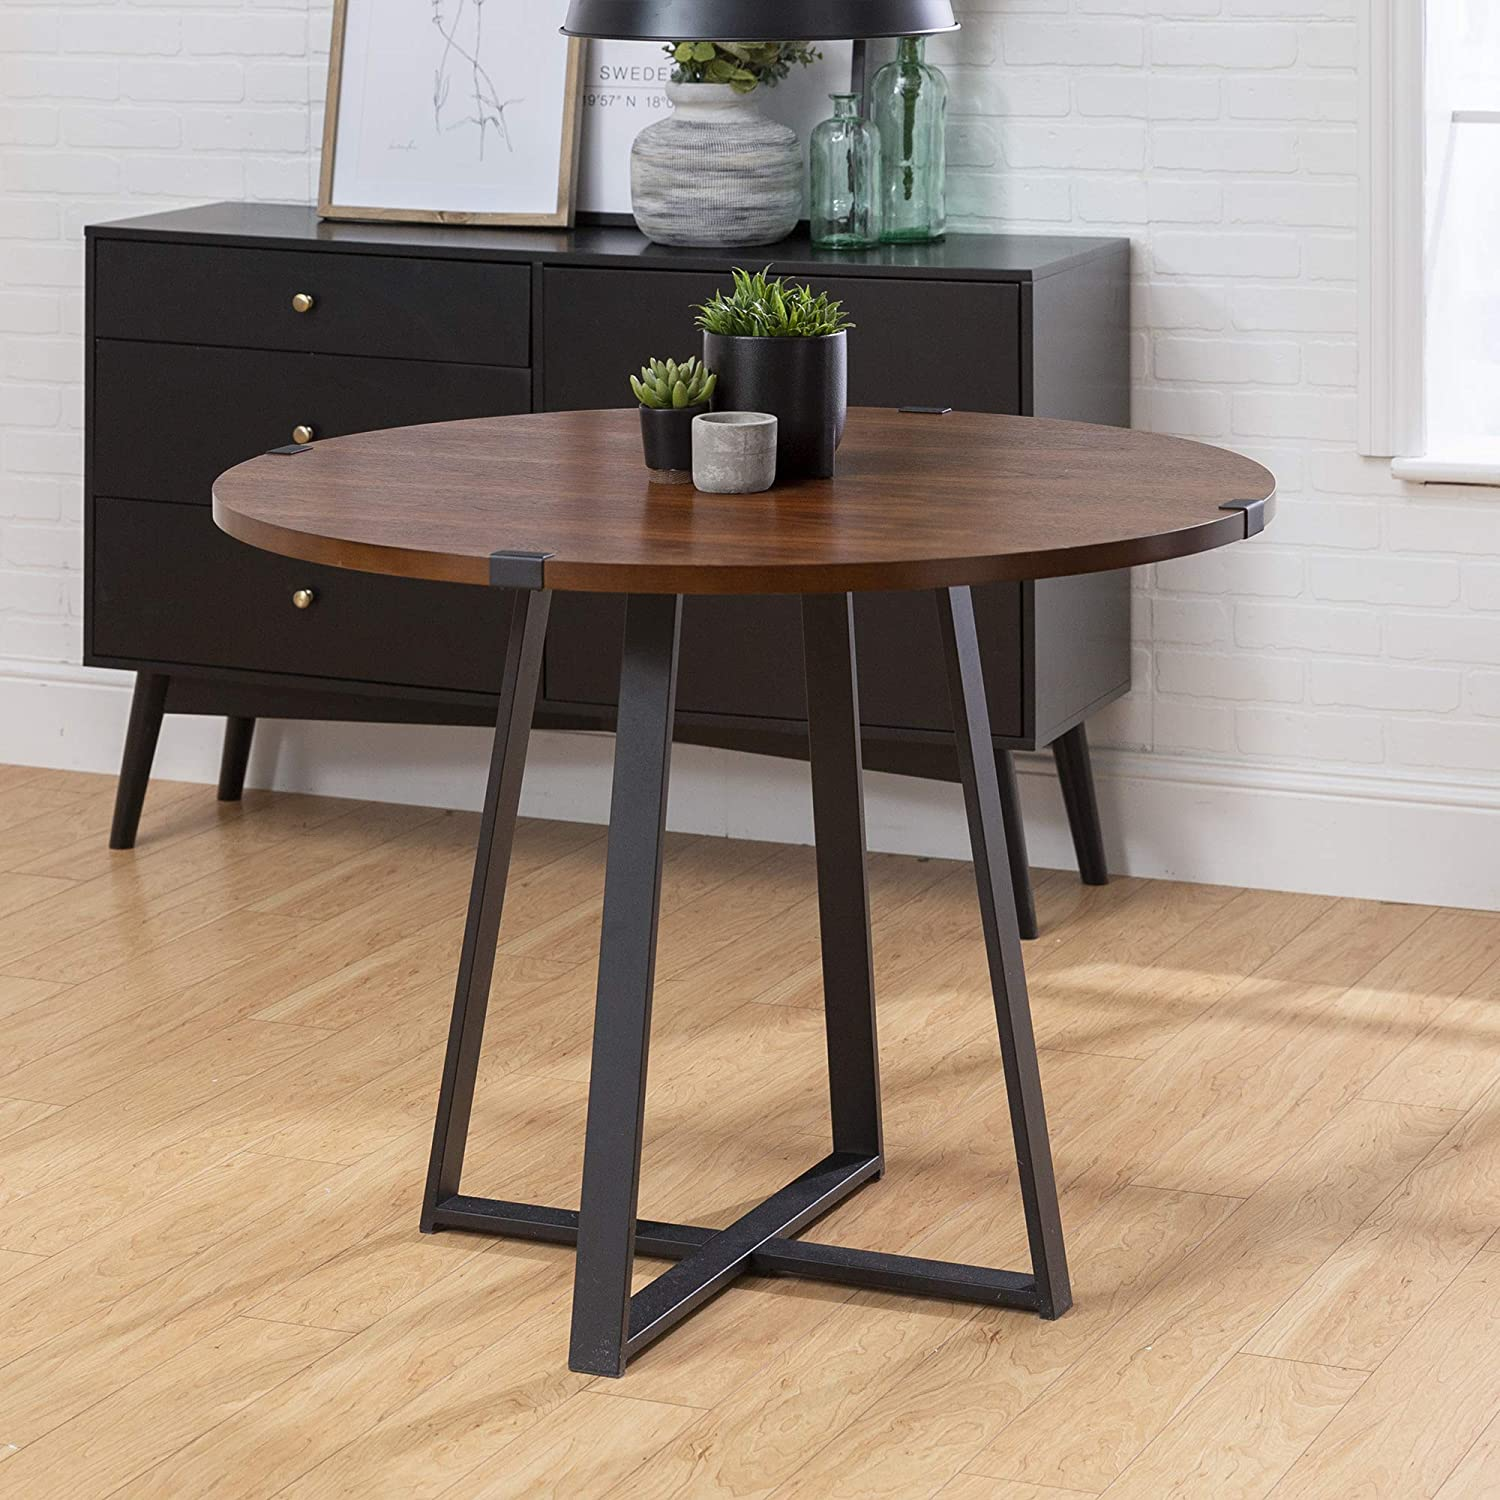 Walker Edison 9 Person Round Industrial Modern Wood Small  Dining  Table   Dining Room Kitchen  Table  Set  Dining Chairs Set Walnut Brown/Black90  Inch